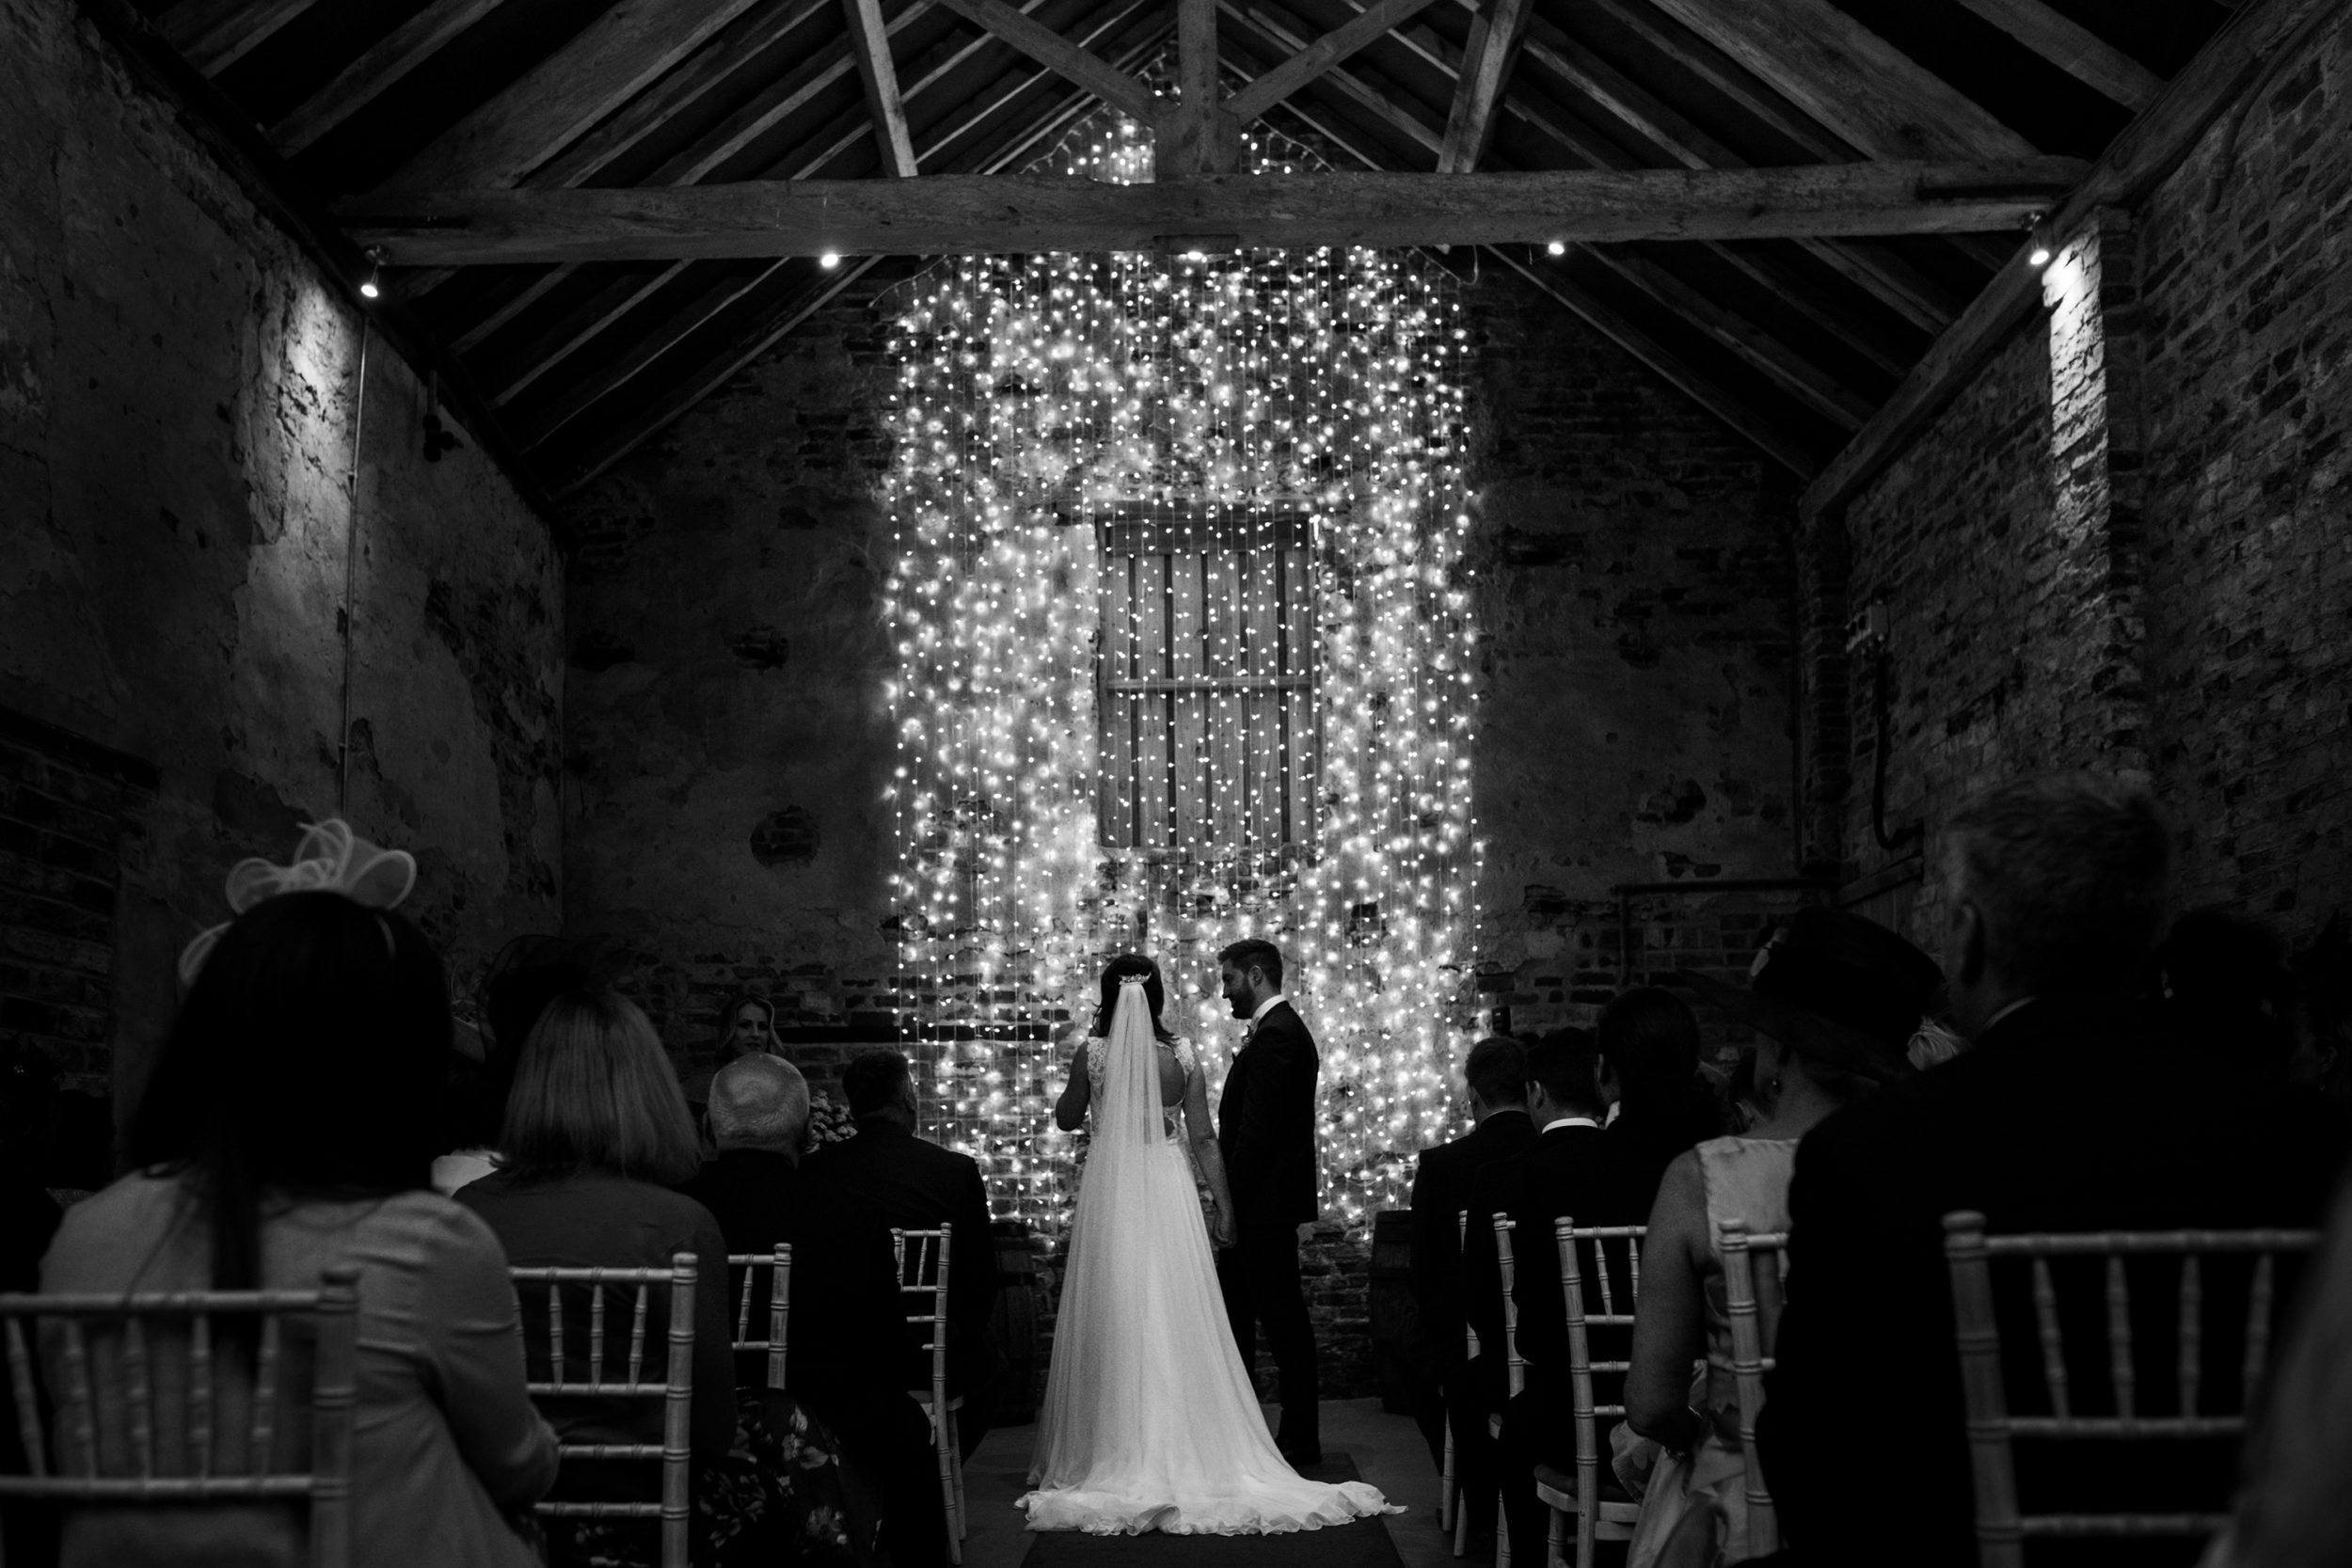 Bride and Groom exchange vows in front of fairy light wall in wedding ceremony at The Normans in York